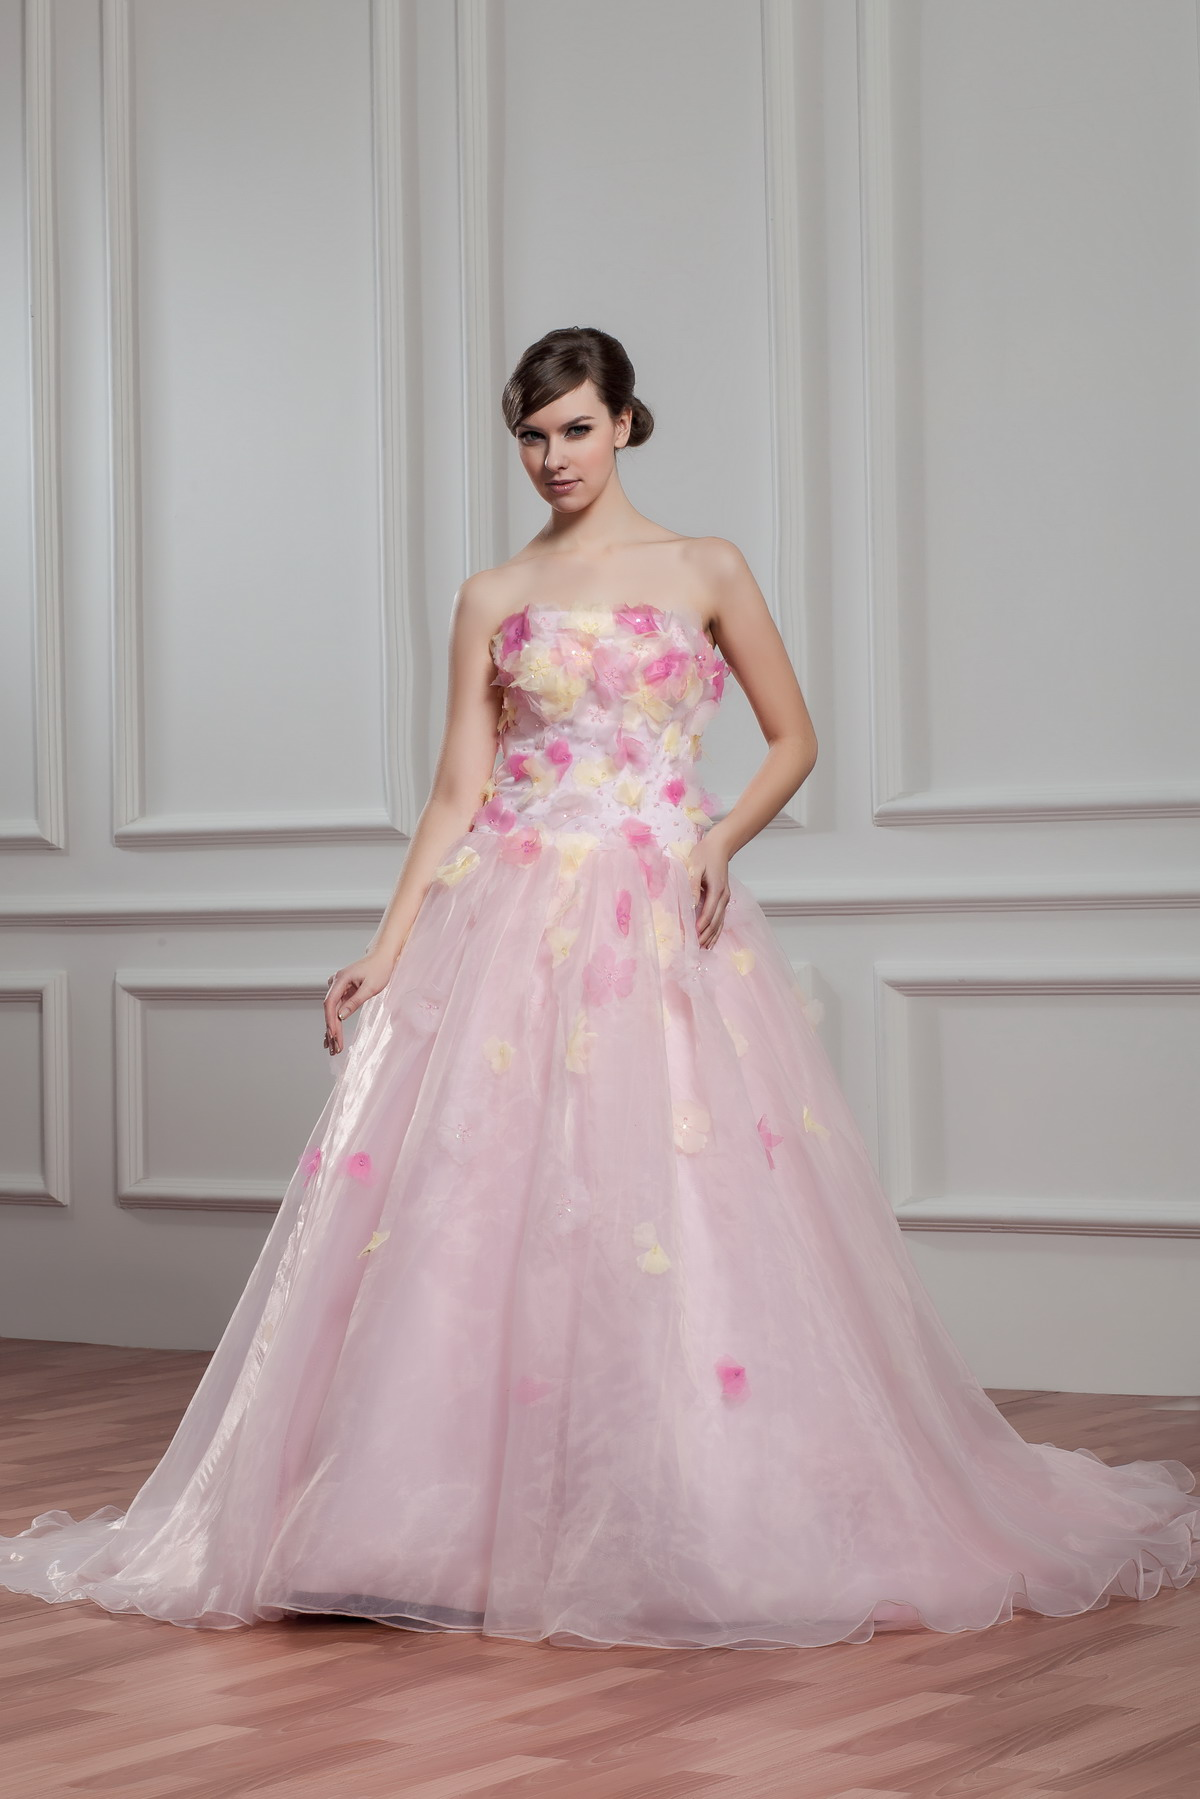 Pink plus size wedding dresses cocktail dresses 2016 for Plus size pink wedding dresses